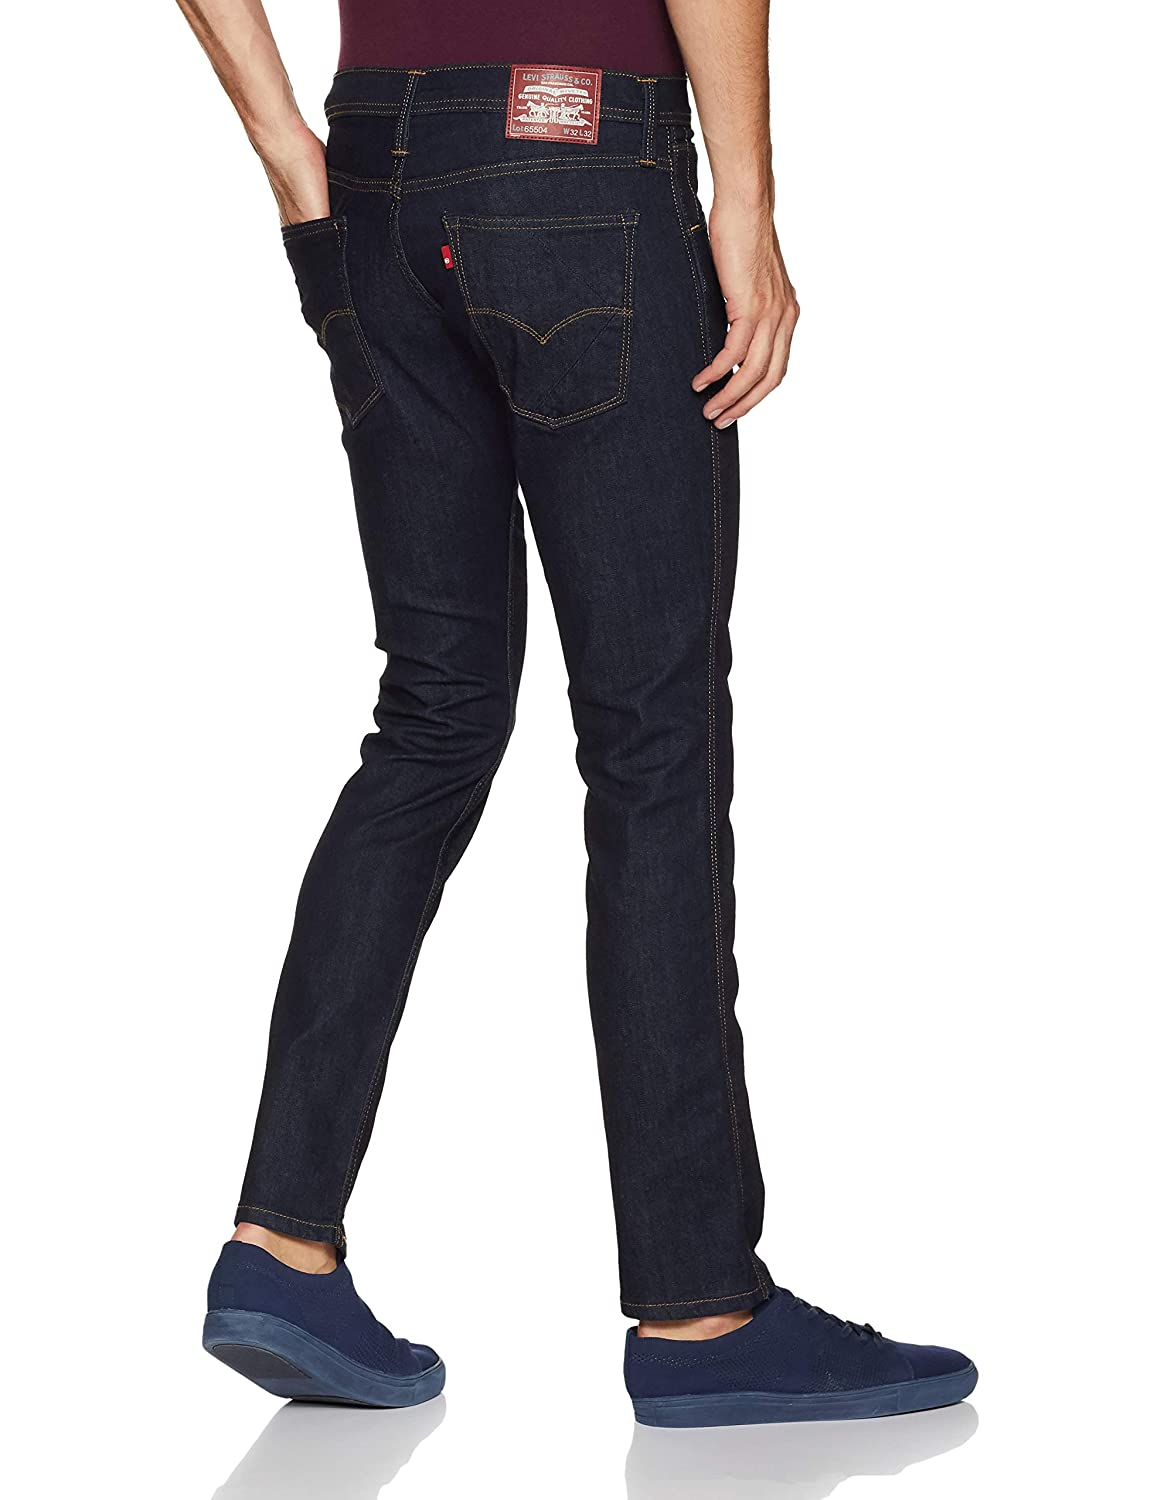 9127a41941c Levi s Men s (65504) Skinny Fit Jeans  Amazon.in  Clothing   Accessories